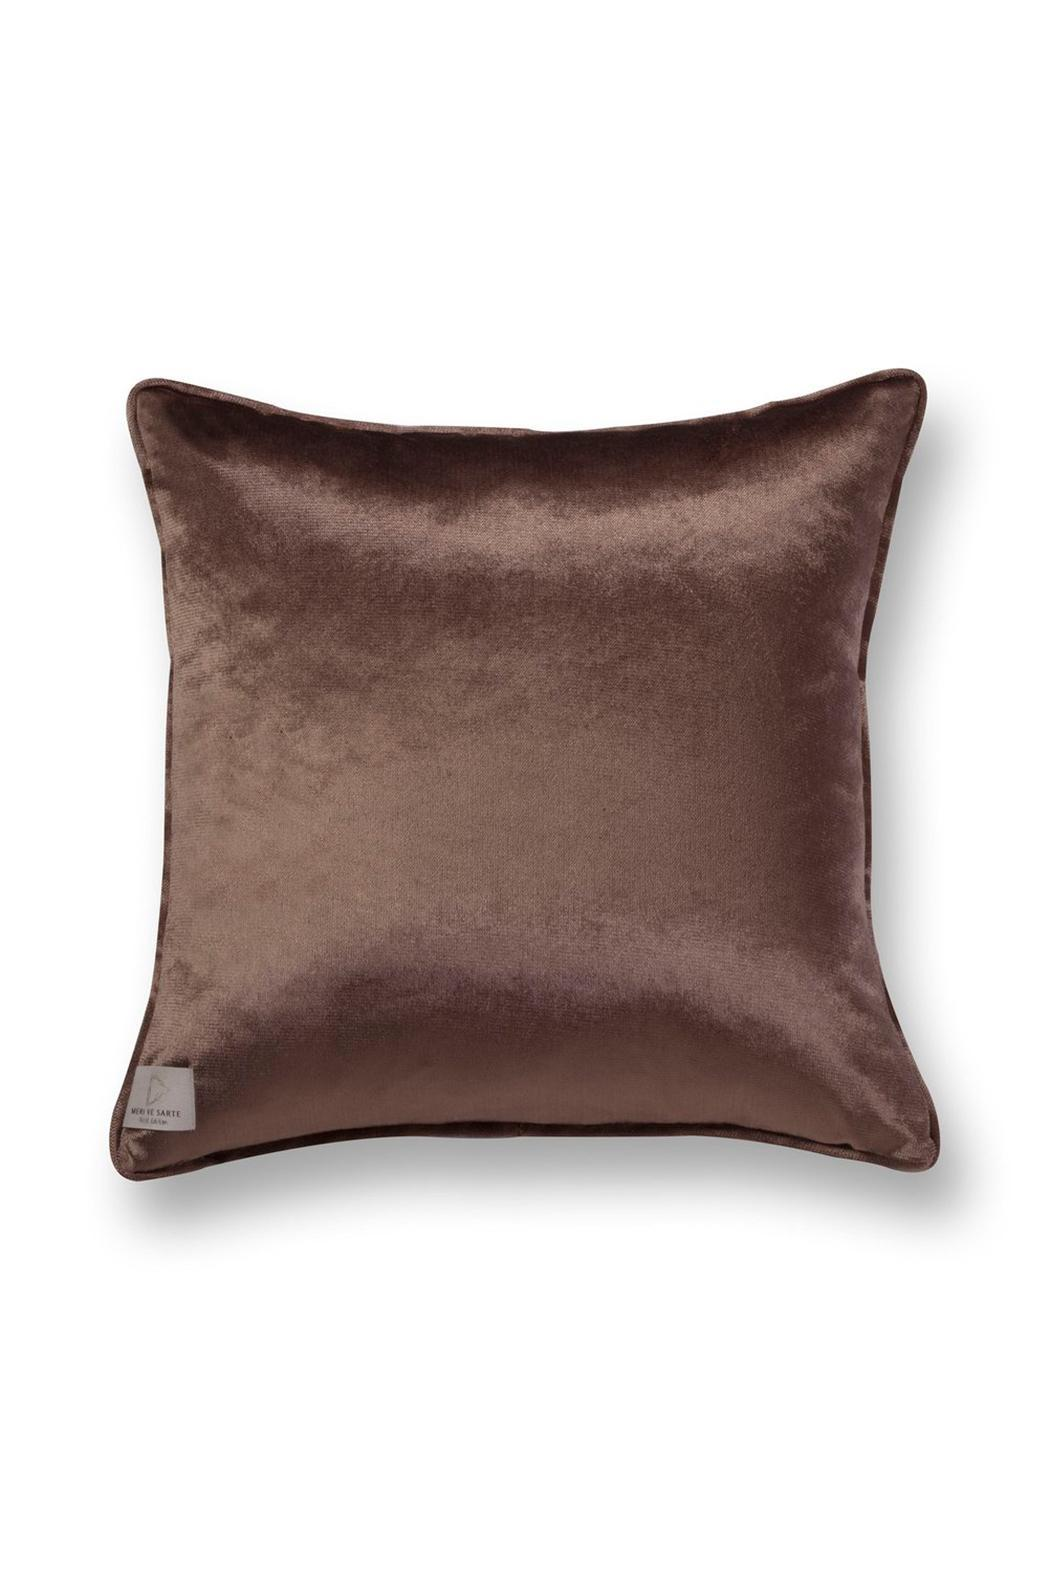 Throw Pillows Velvet : MERI VE SARTE Velvet Throw Pillow from Tel Aviv by Bloom Field ? Shoptiques